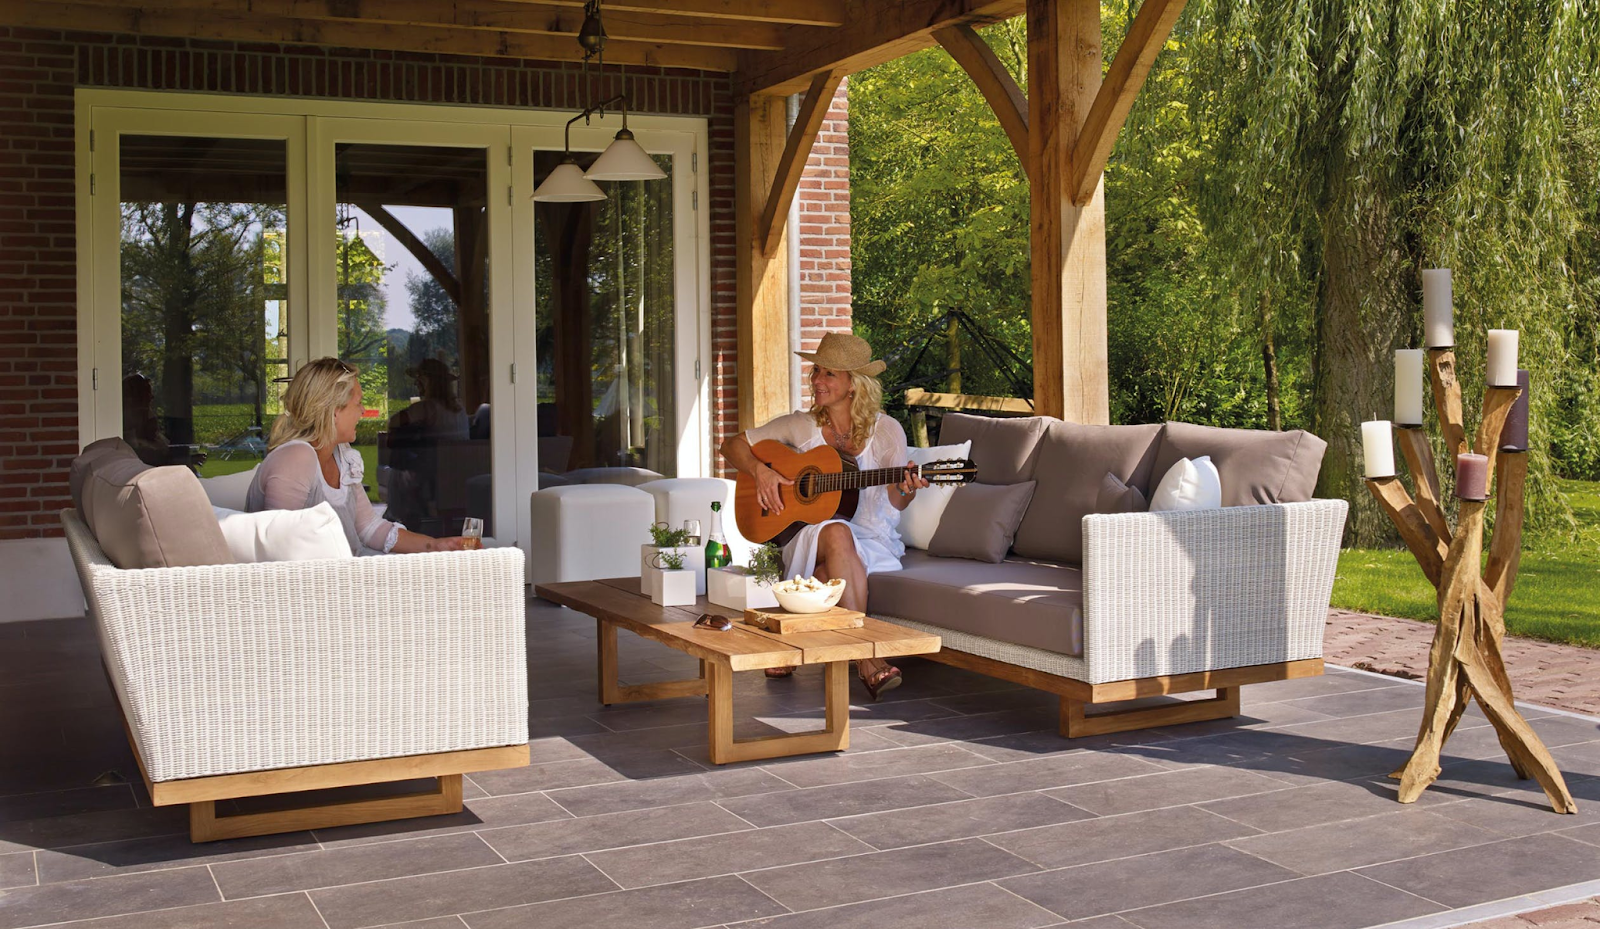 A well designed patio keeping up with modern trends.